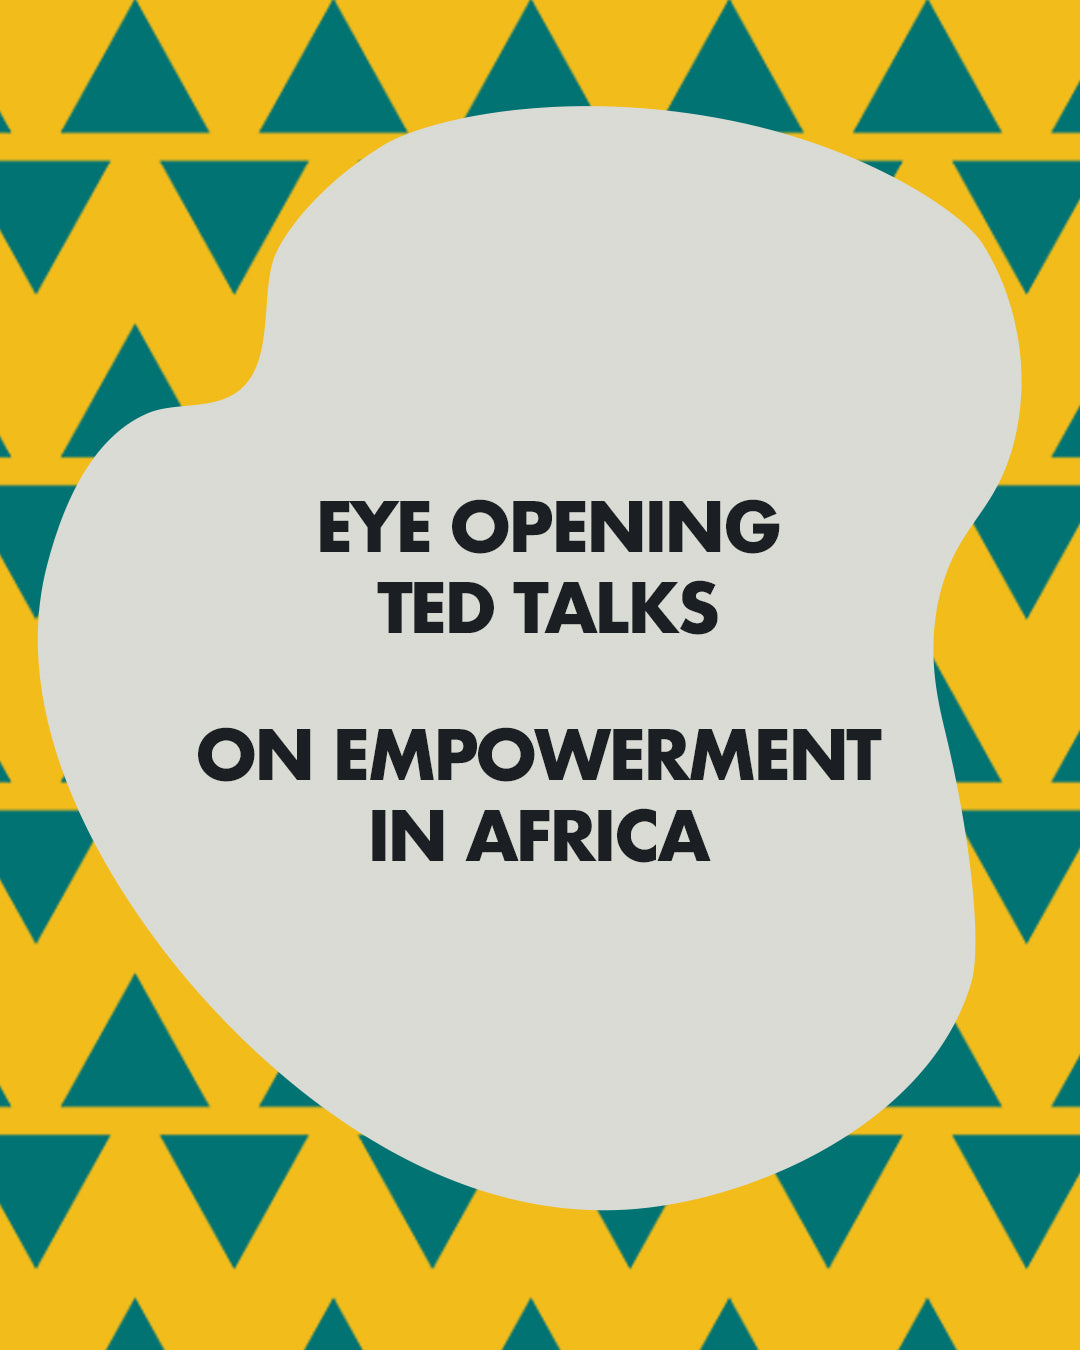 7 TEDTalks About Empowerment in Africa To Watch This Week